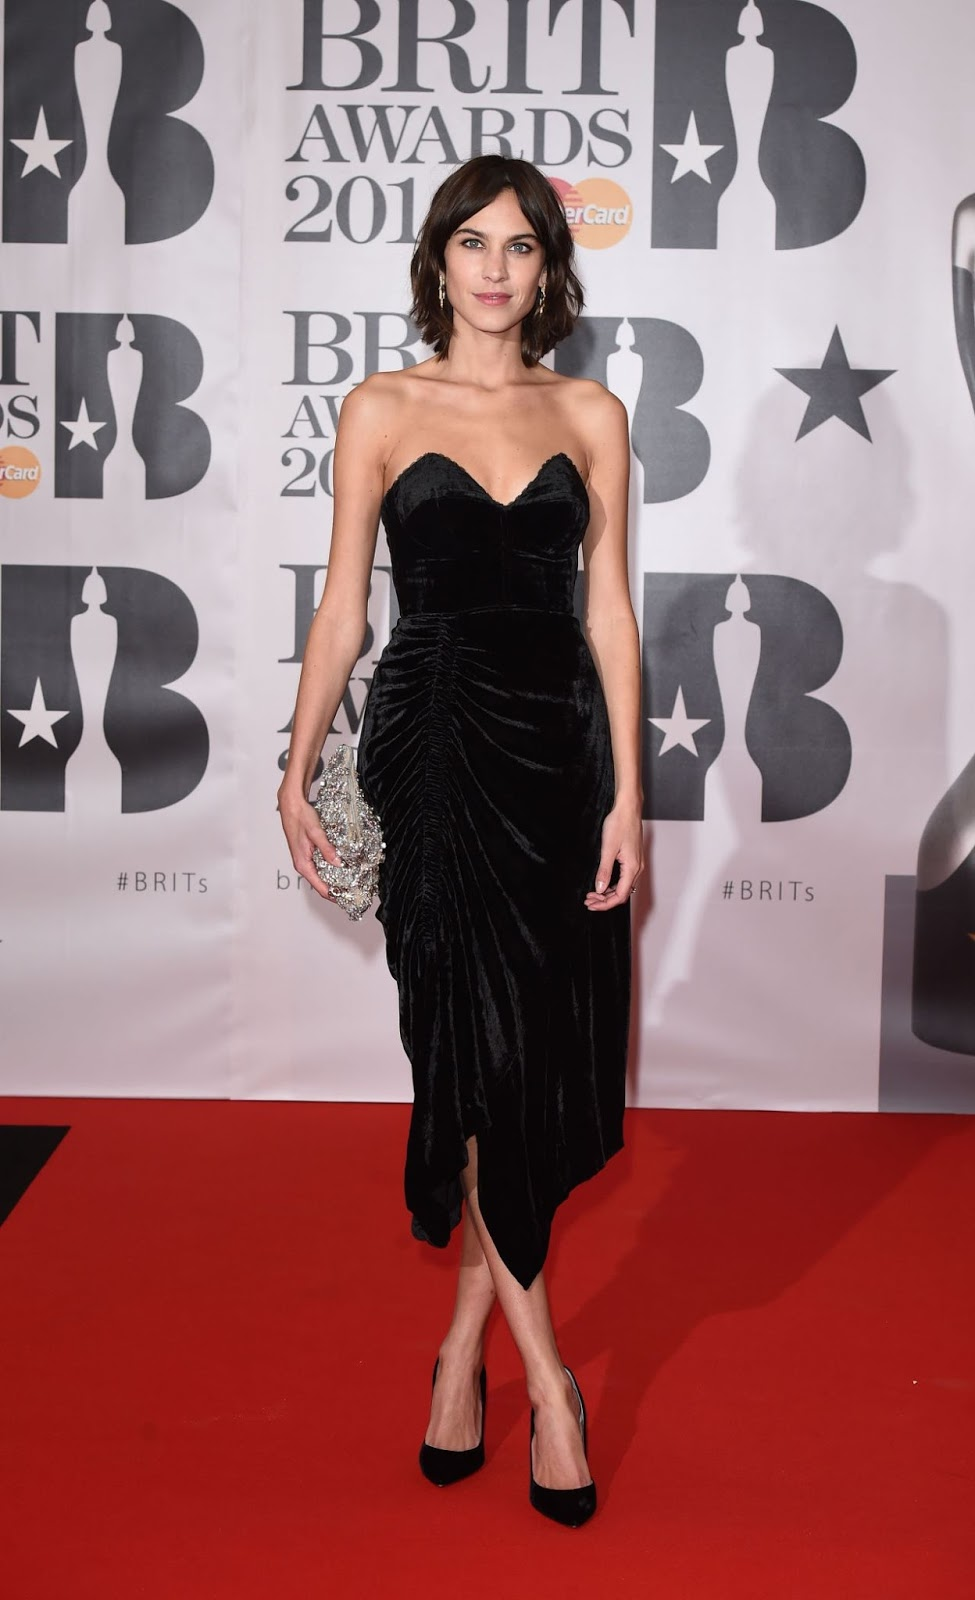 Alexa Chung is glamorous at the Brit Awards 2016